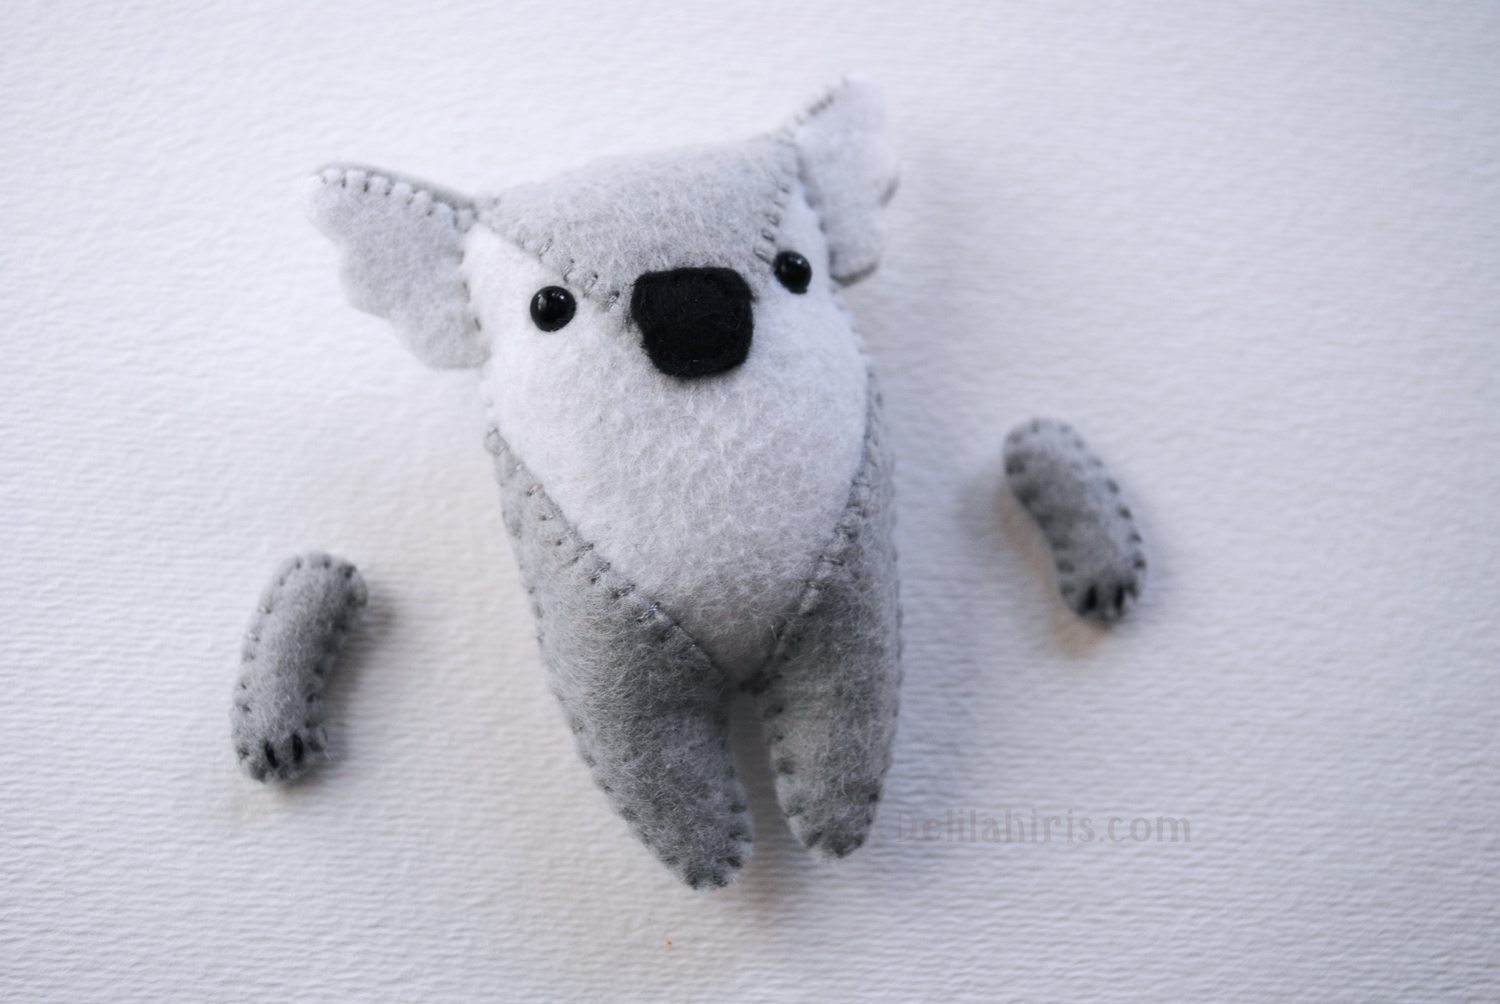 Stuffed Felt Koala Pattern Ornament Or Pocket Feltie